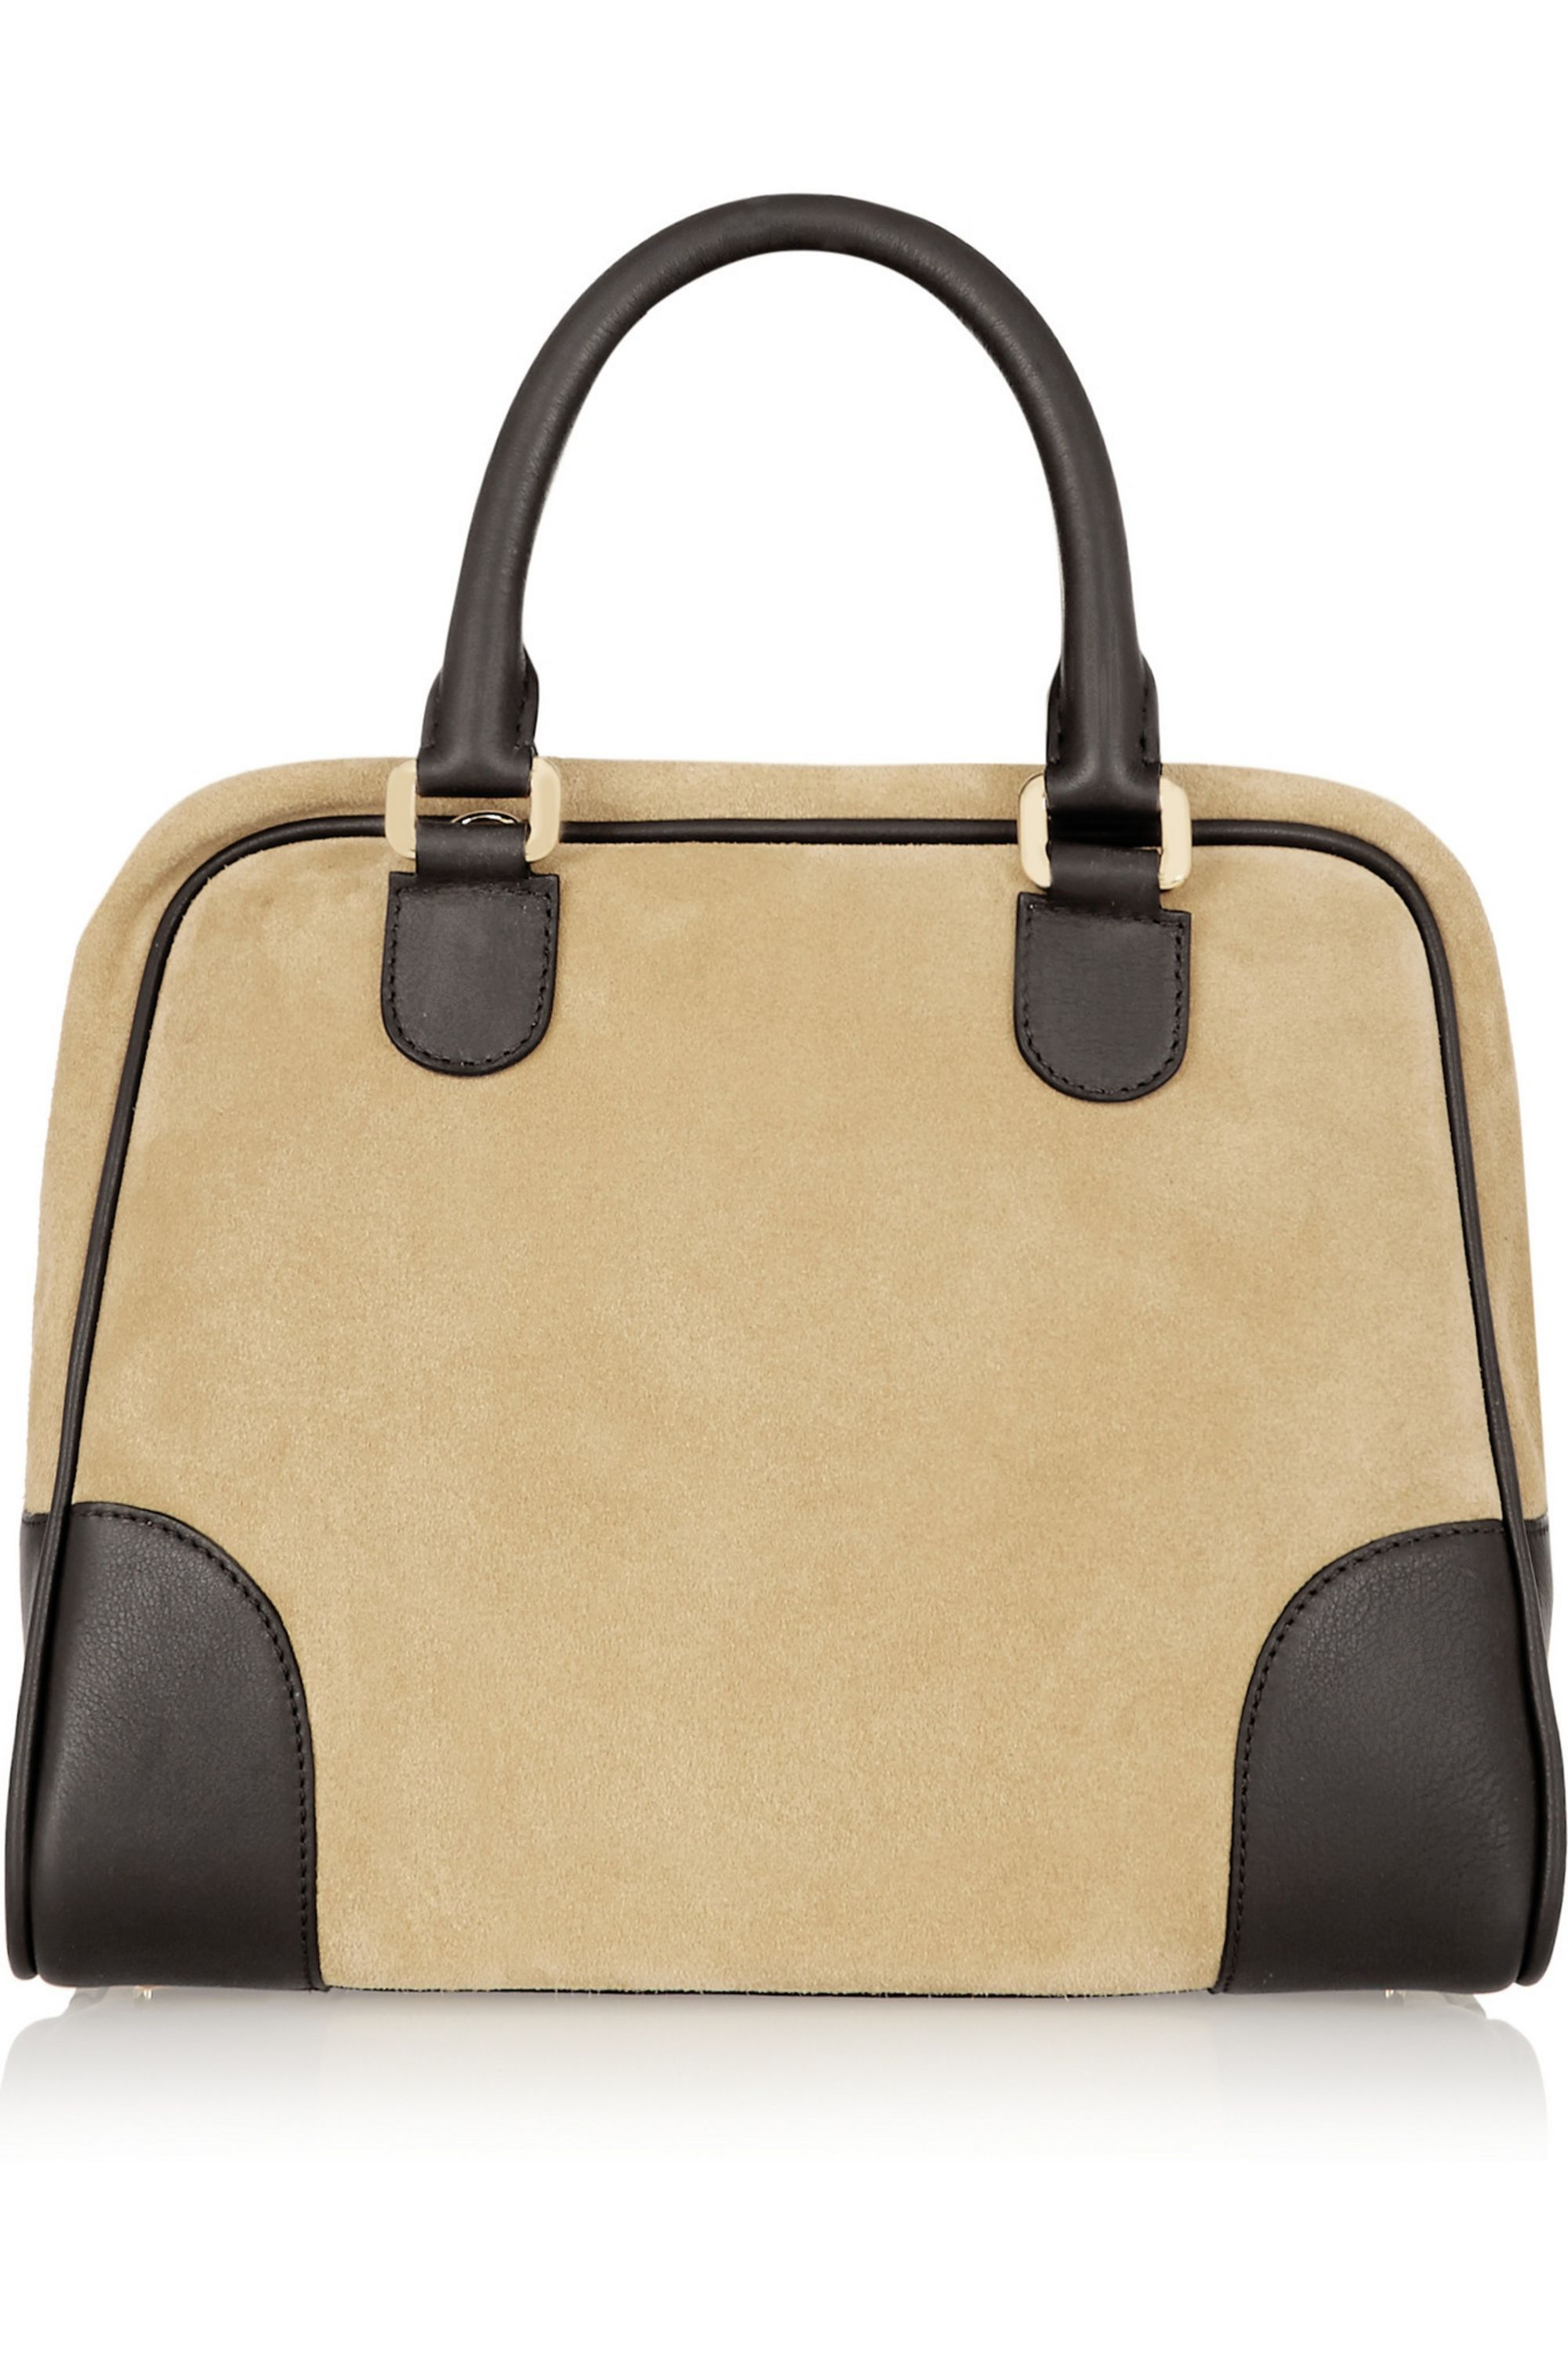 Loewe Amazona 75 suede and leather tote